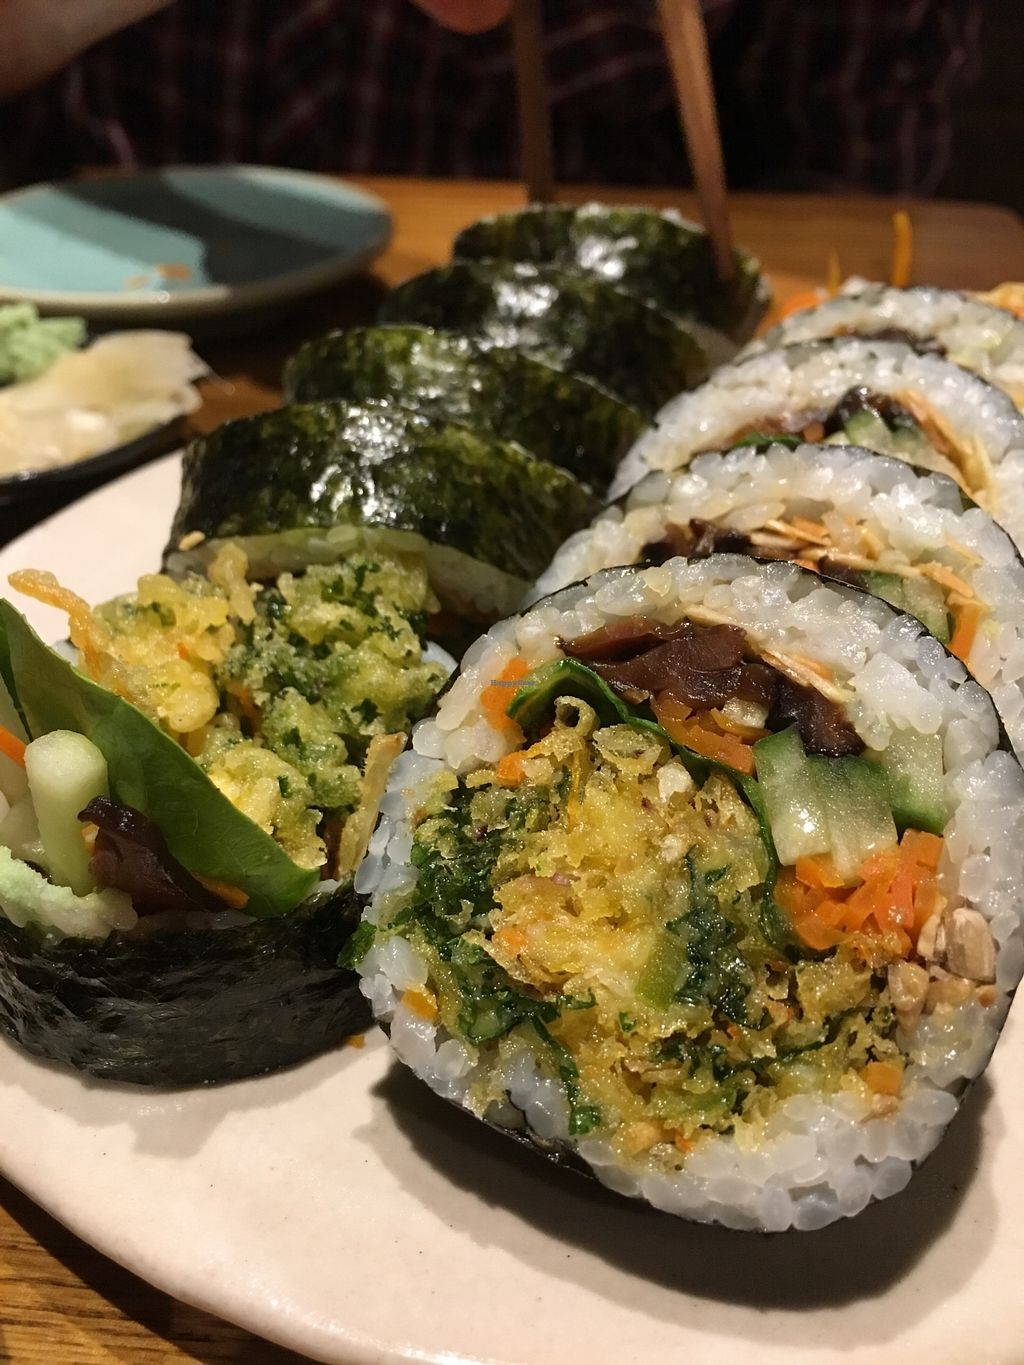 """Photo of Youmiko Vegan Sushi  by <a href=""""/members/profile/Kwacha"""">Kwacha</a> <br/>tasting menu <br/> January 17, 2018  - <a href='/contact/abuse/image/68693/347640'>Report</a>"""